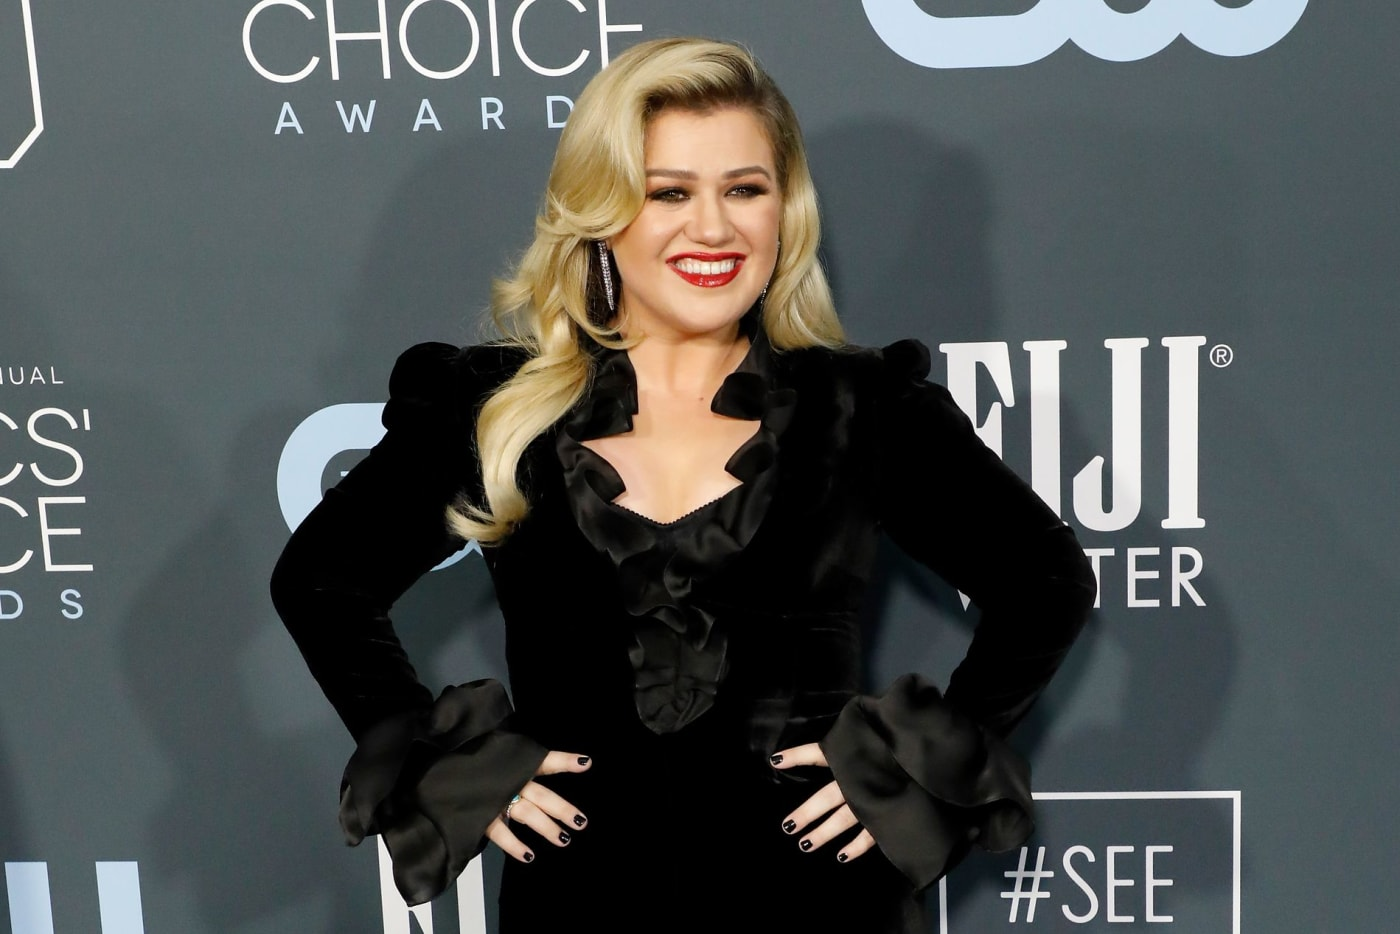 Kelly Clarkson at Choice Awards